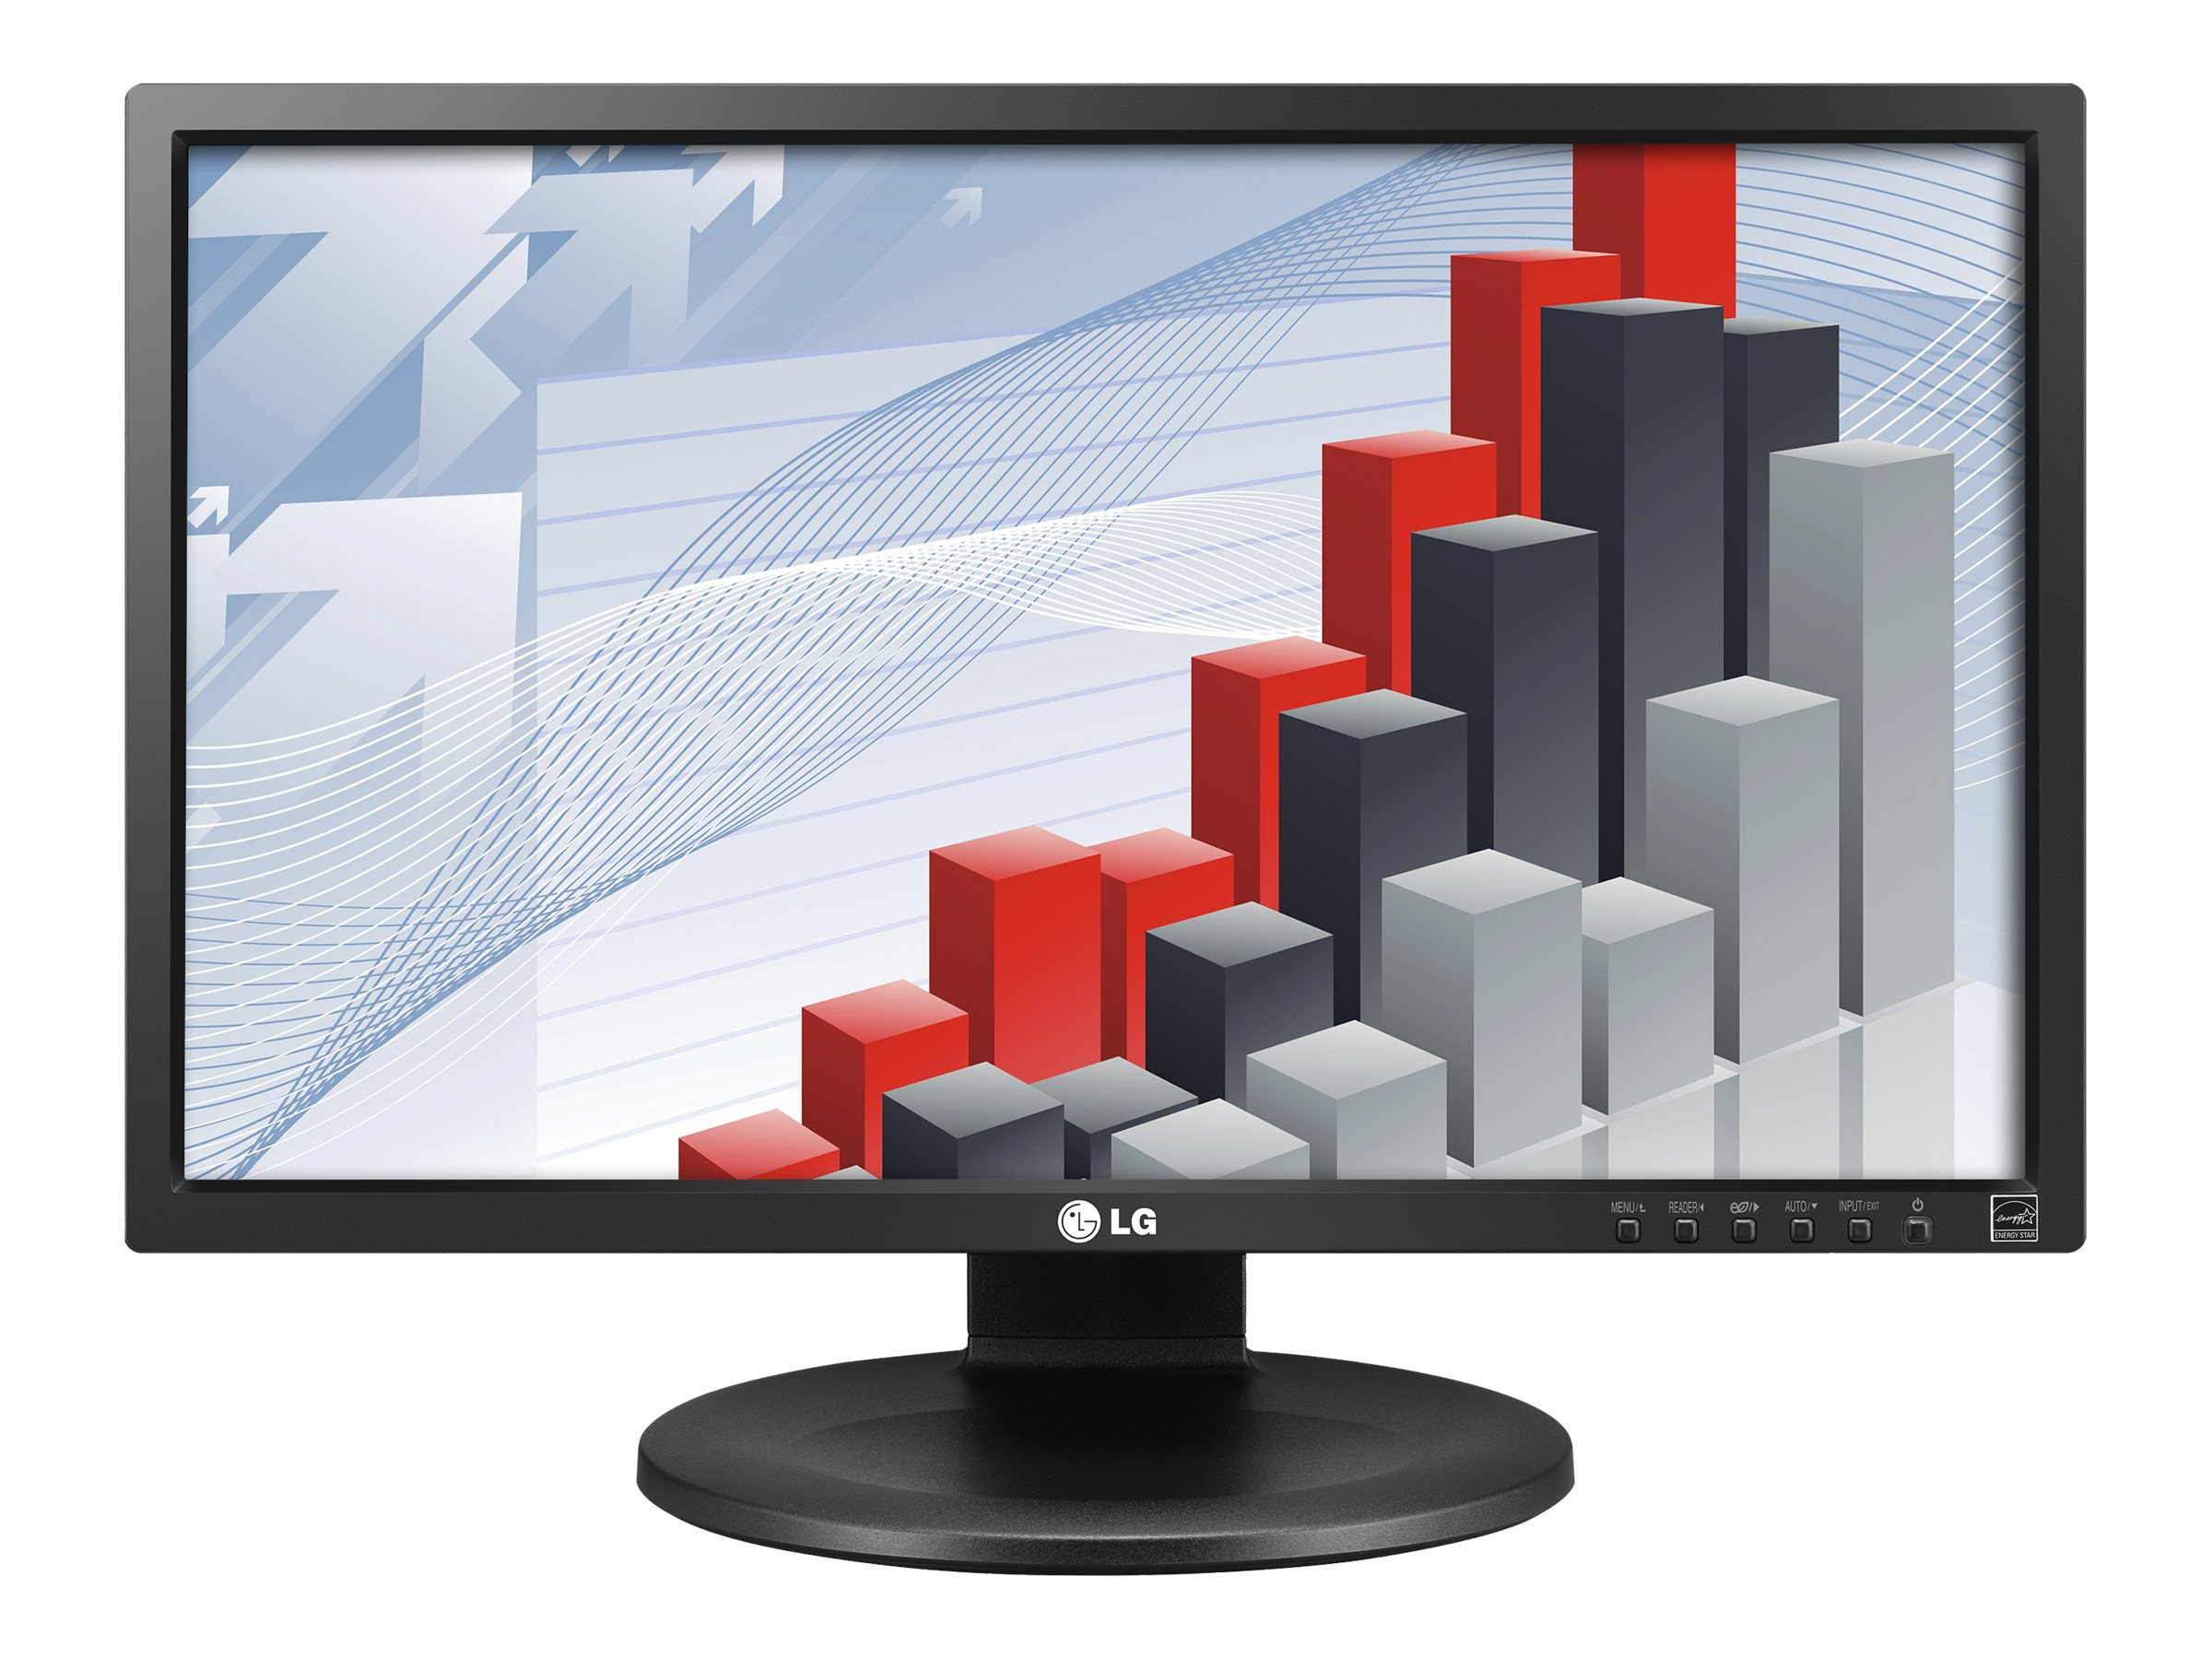 "Image for Lg - Led Monitor - Full Hd (1080P) - 24"" from Circuit City"